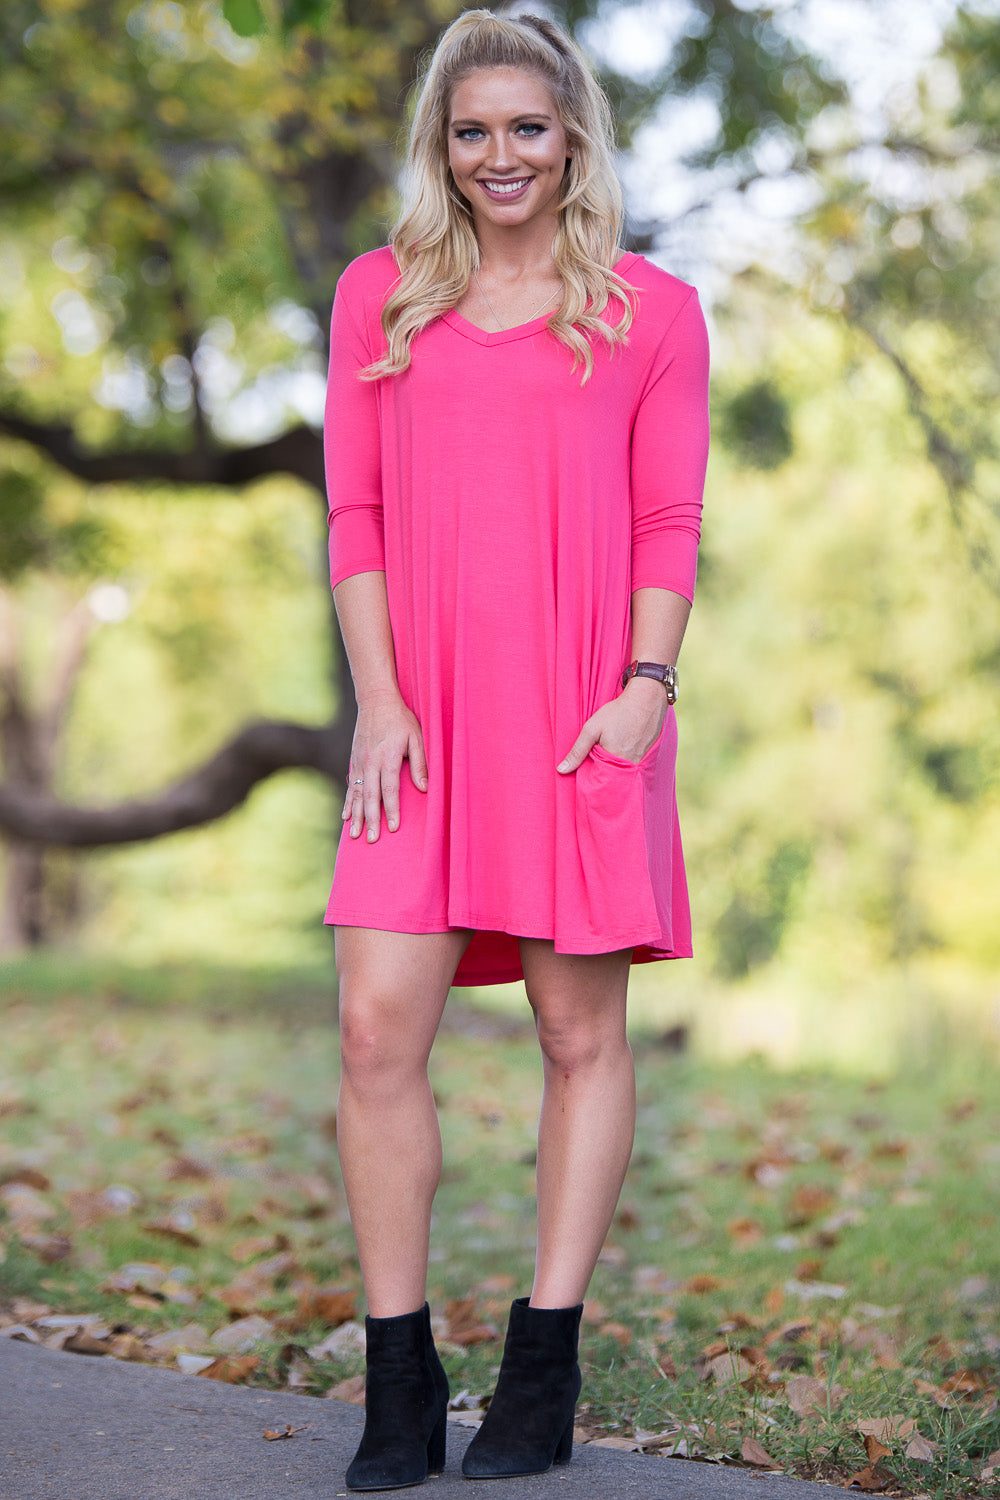 Piko 3/4 V-Neck Sleeve Swing Dress - Hot Pink - Piko Clothing